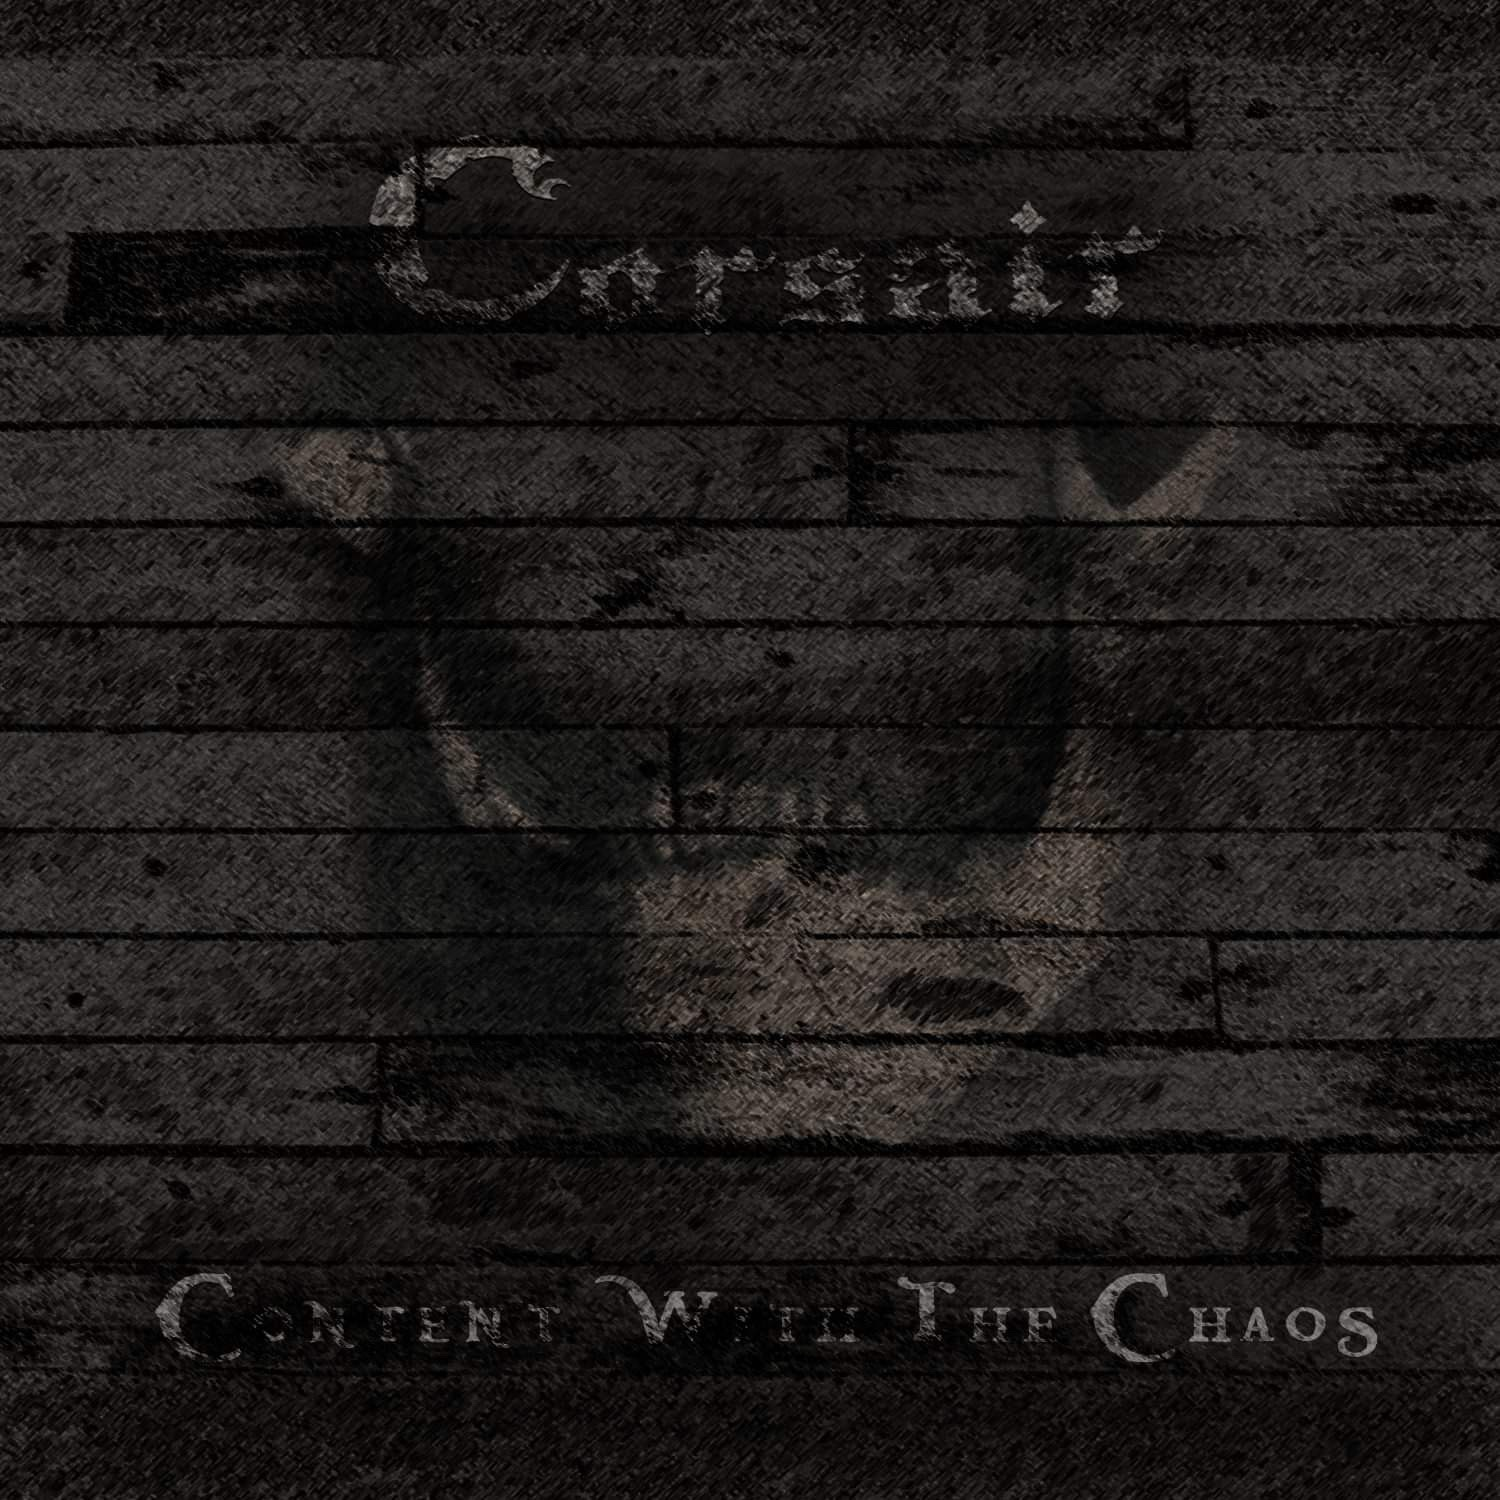 """Album cover for Corsair """"Content With the Chaos."""""""